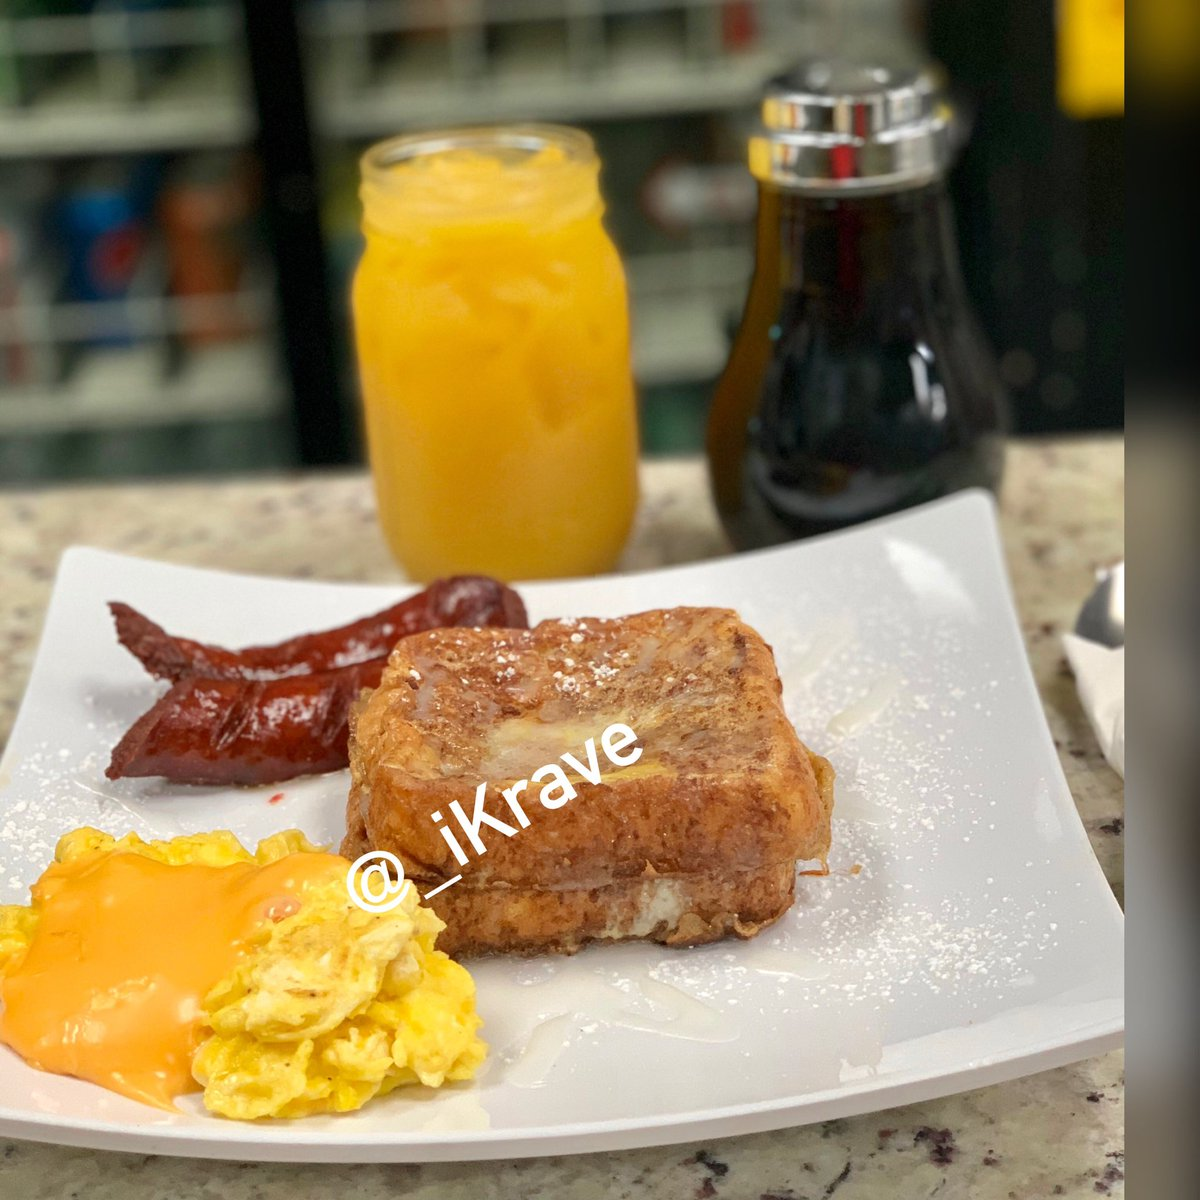 #iKravers Starting tomorrow Tuesday, June 18th iKrave will be serving full breakfast. Doors open at 7am. Breakfast is served until 11:30am on the weekdays.. 😋 Summer Ready ☀️ Come and try our new mouth watering 🤤French Toast #shrimpandgrits #oxtailsandgrits